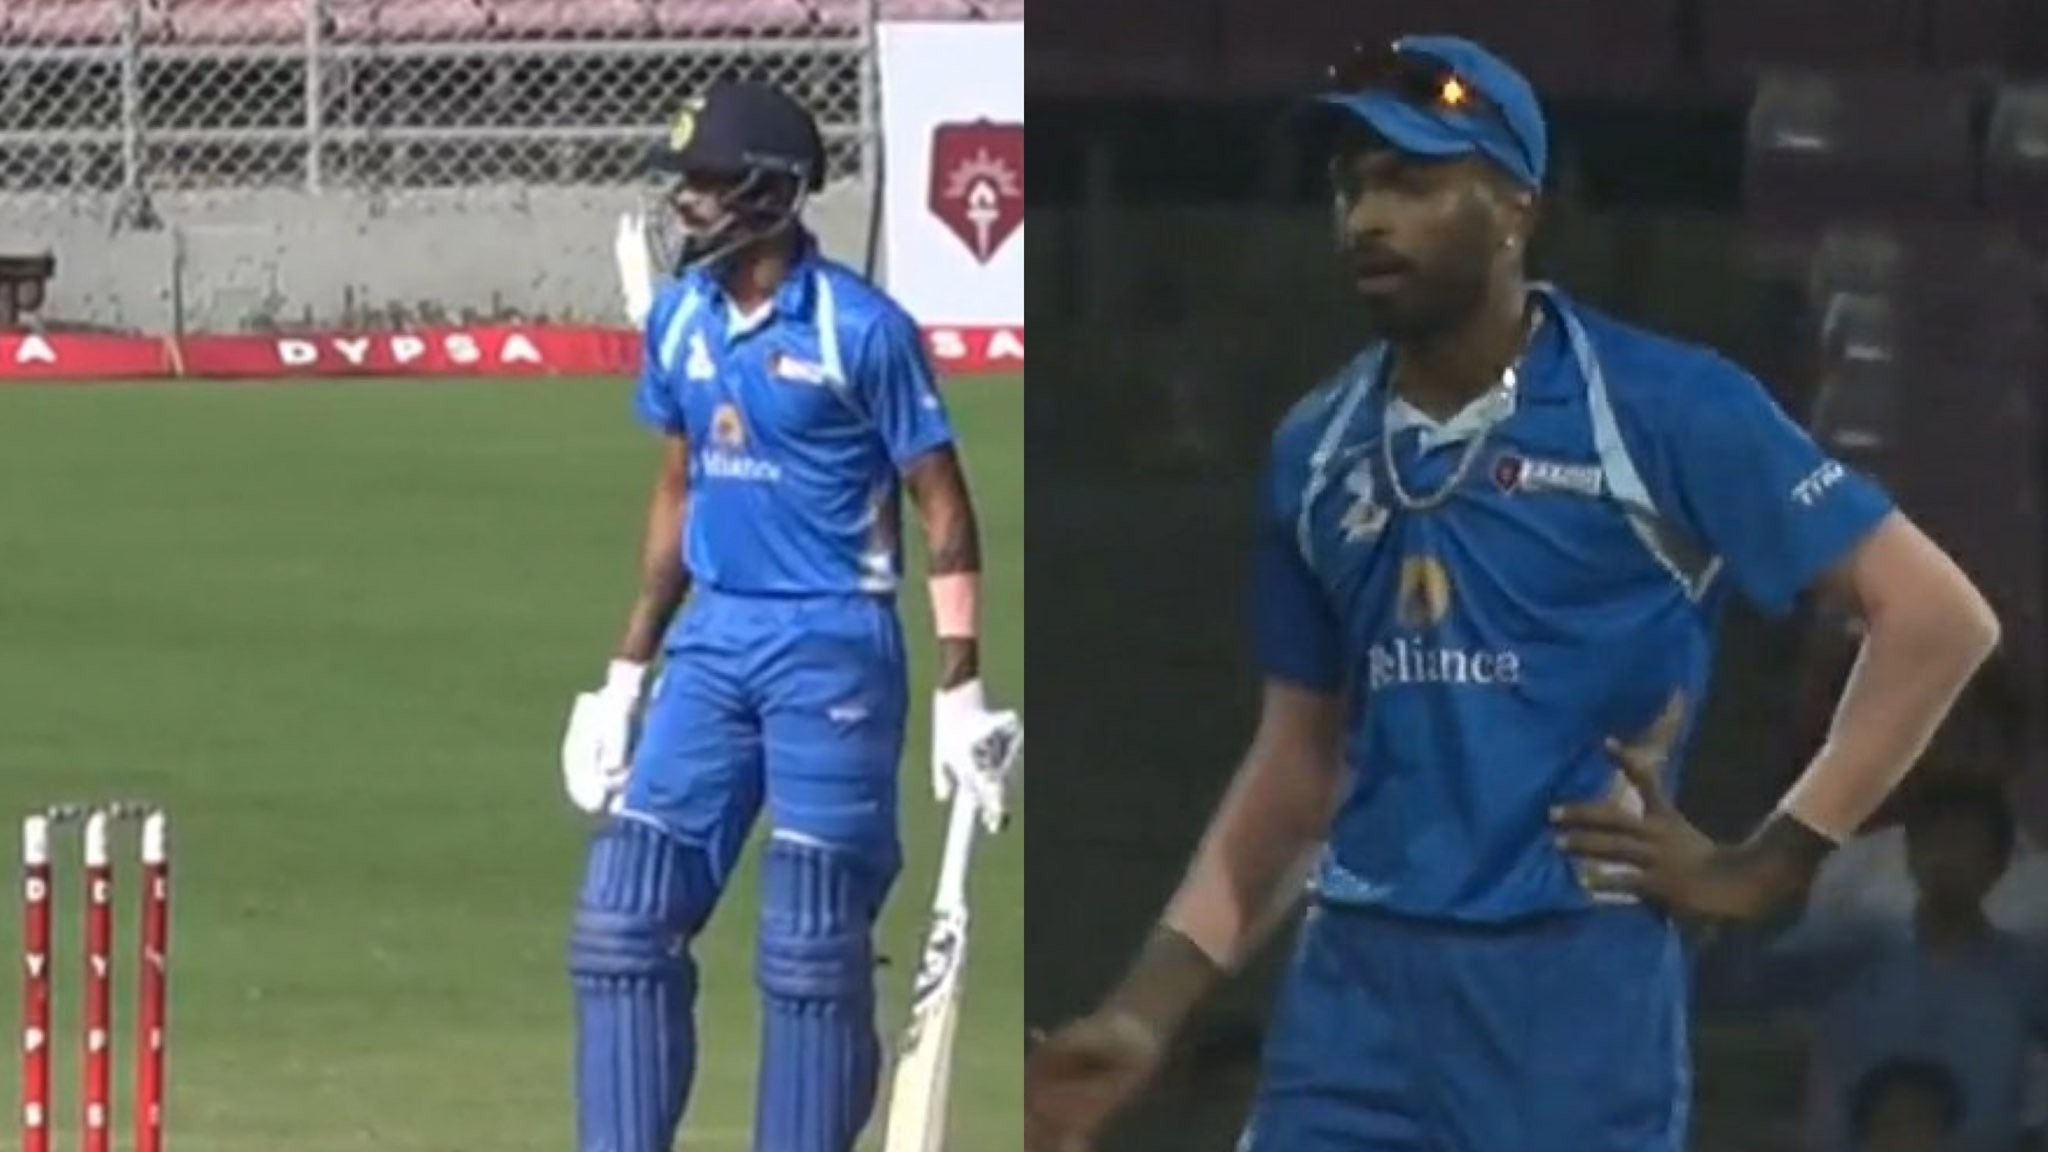 WATCH- Hardik Pandya returns to cricket, hits 4 sixes and takes three wickets in DY Patil T20 Cup